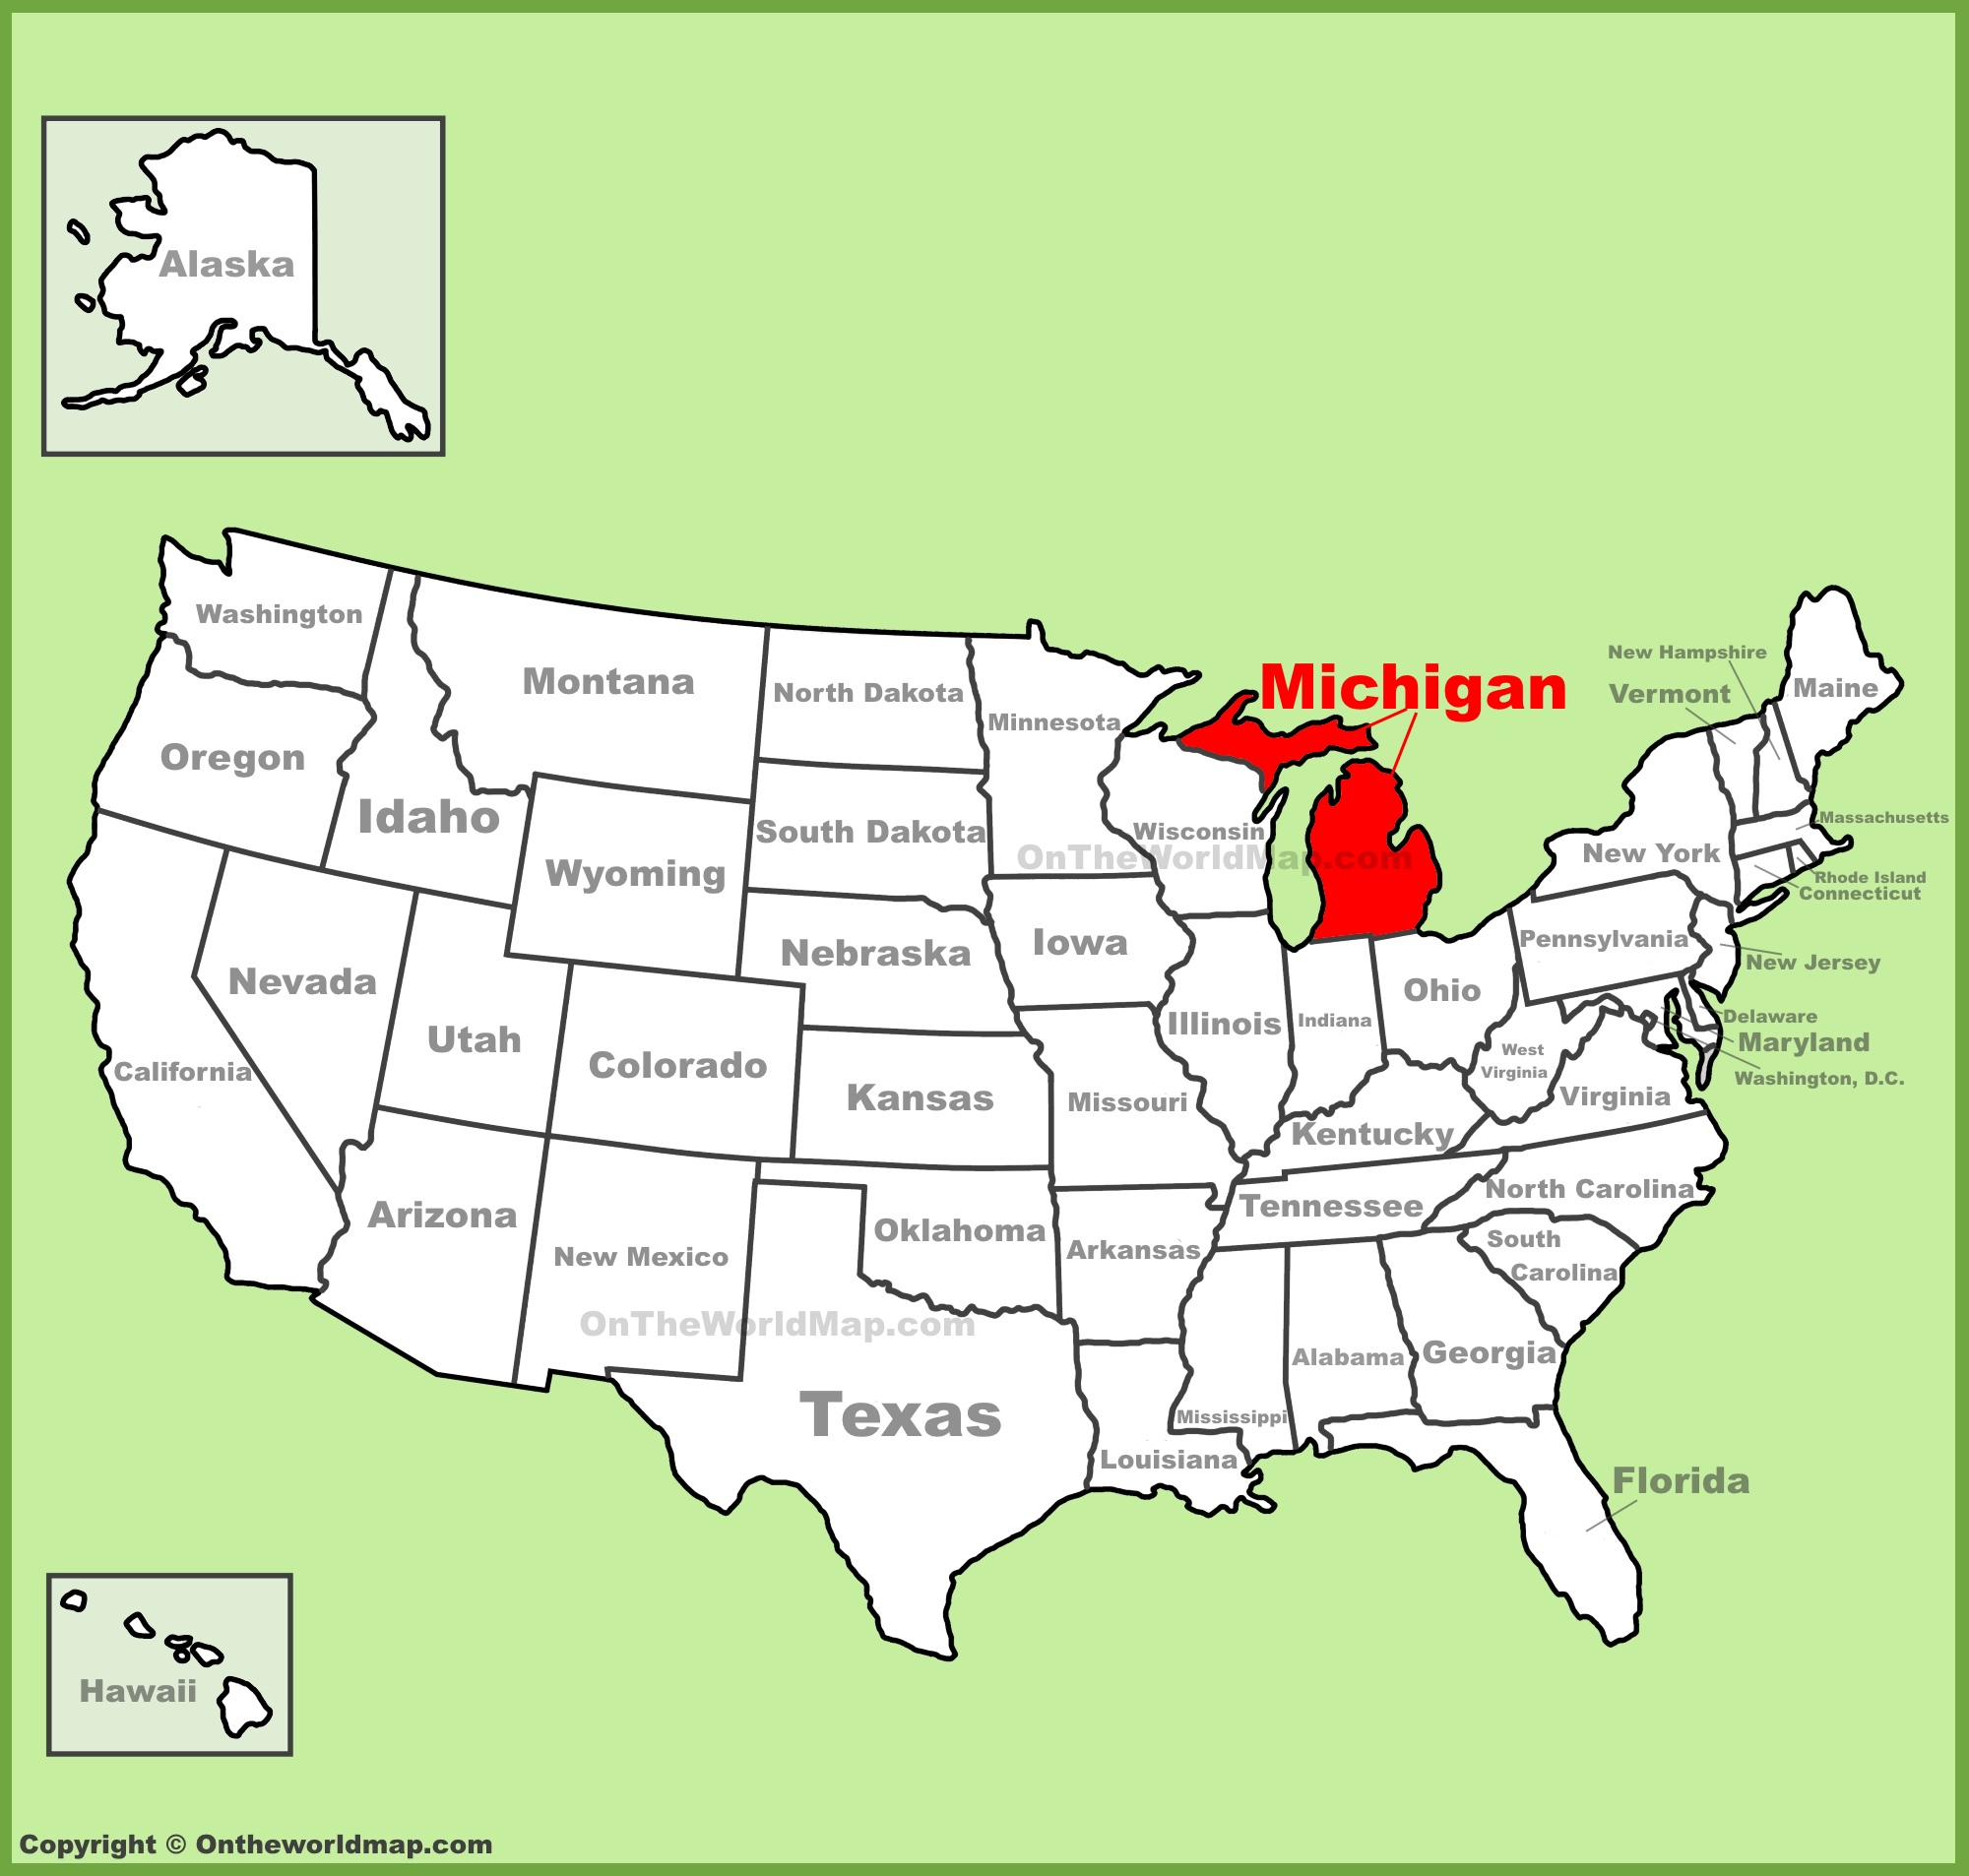 Michigan State Maps USA Maps Of Michigan MI - Map of the state of michigan